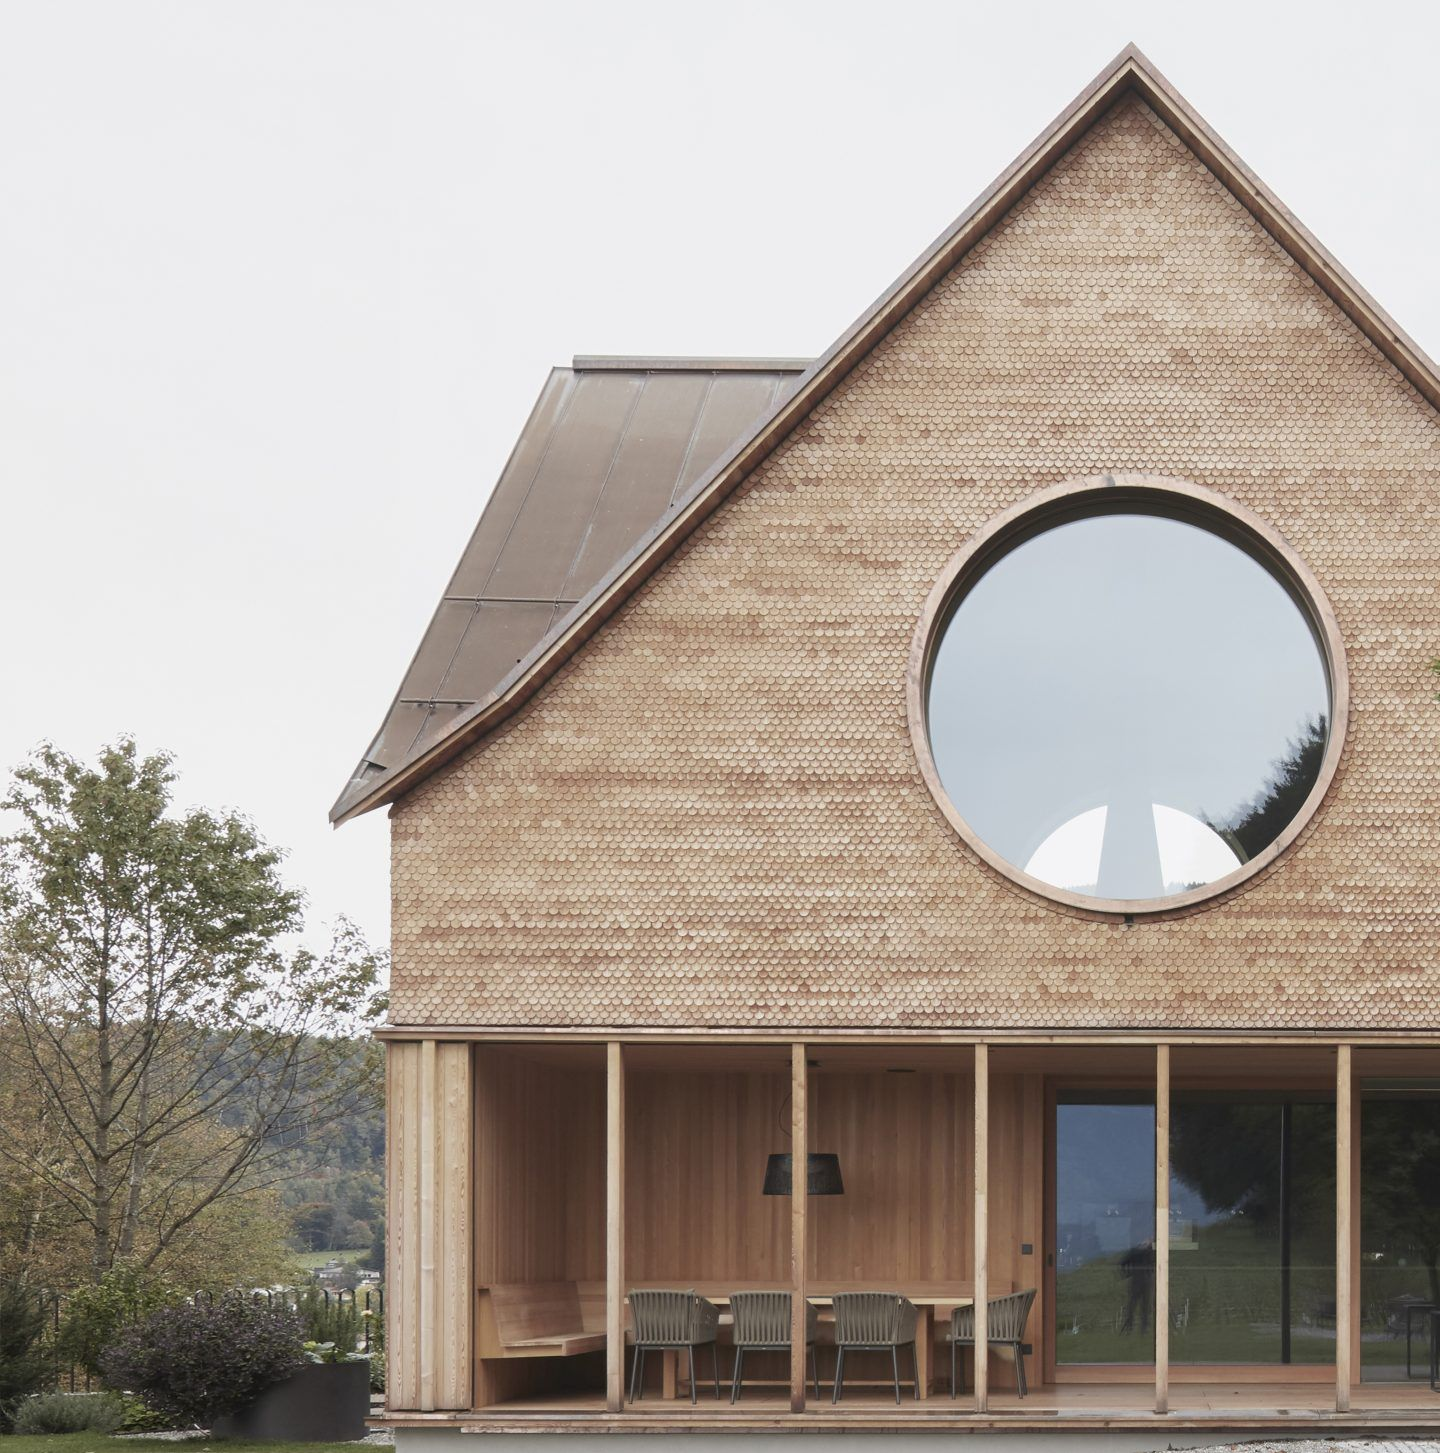 IGNANT-Architecture-Innauer-Matt-Architekten-House-With-Three-Eyes-02